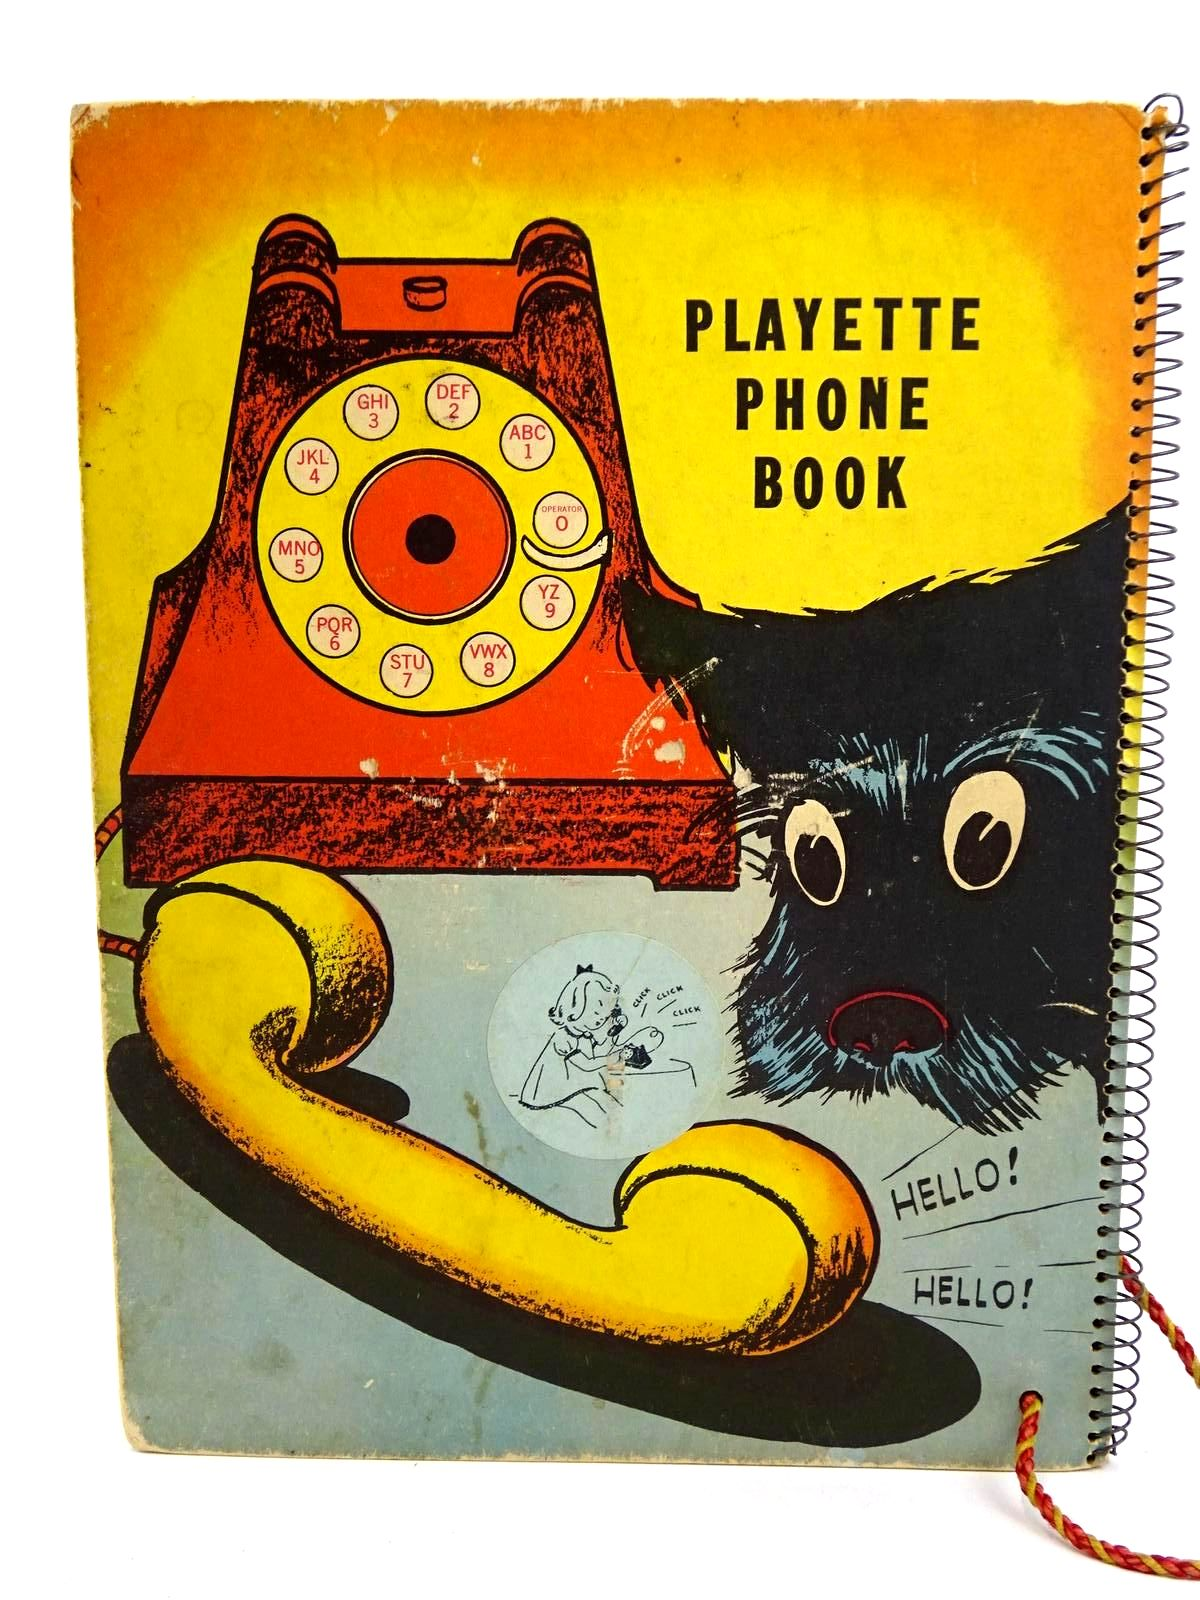 Photo of PLAYETTE PHONE BOOK written by Wise, Larry Goldsmith, M. illustrated by Briefer, Dick published by Playette Corp. (STOCK CODE: 1318330)  for sale by Stella & Rose's Books